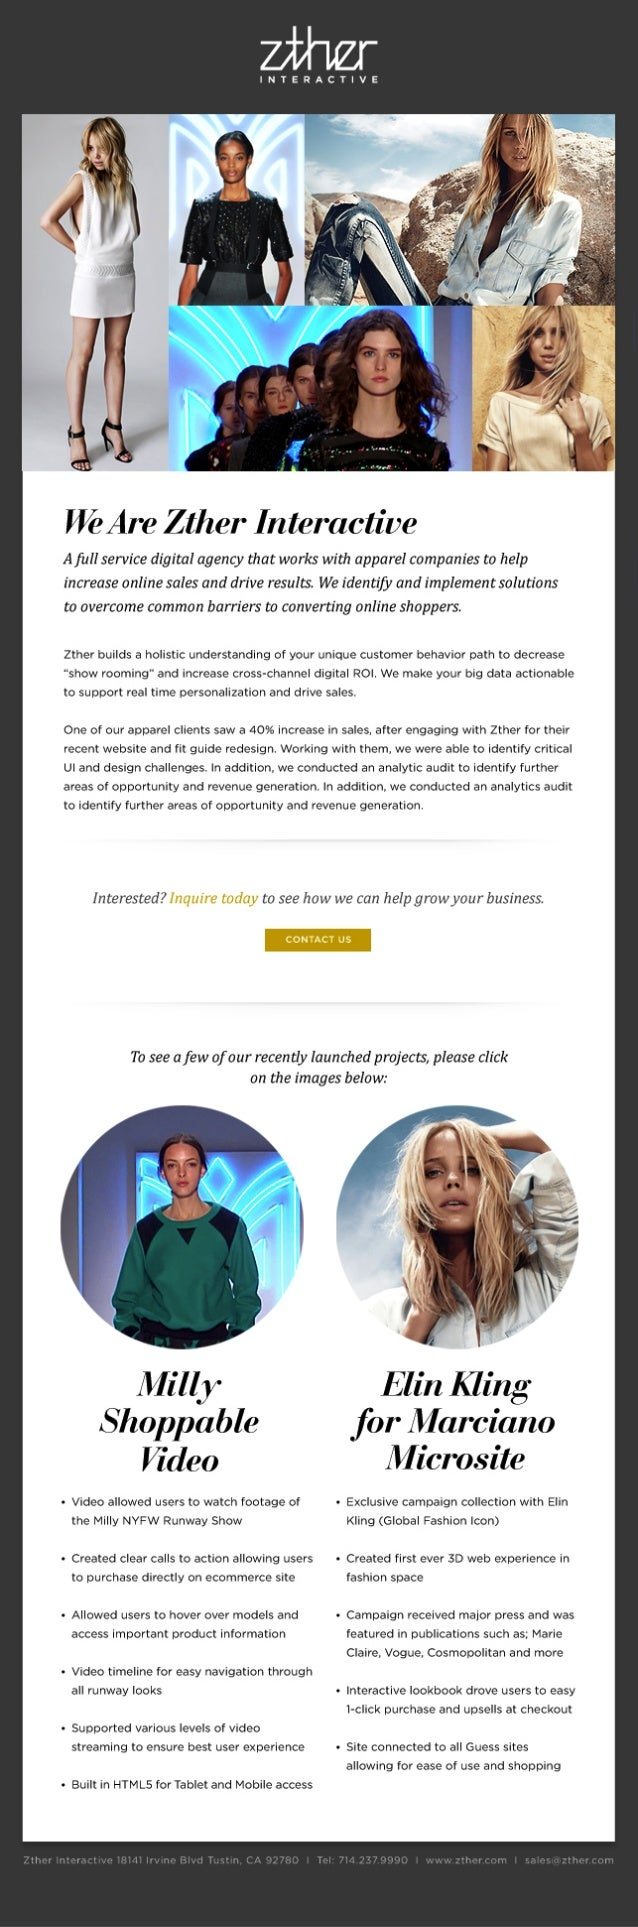 Zther Interactive email marketing campaign